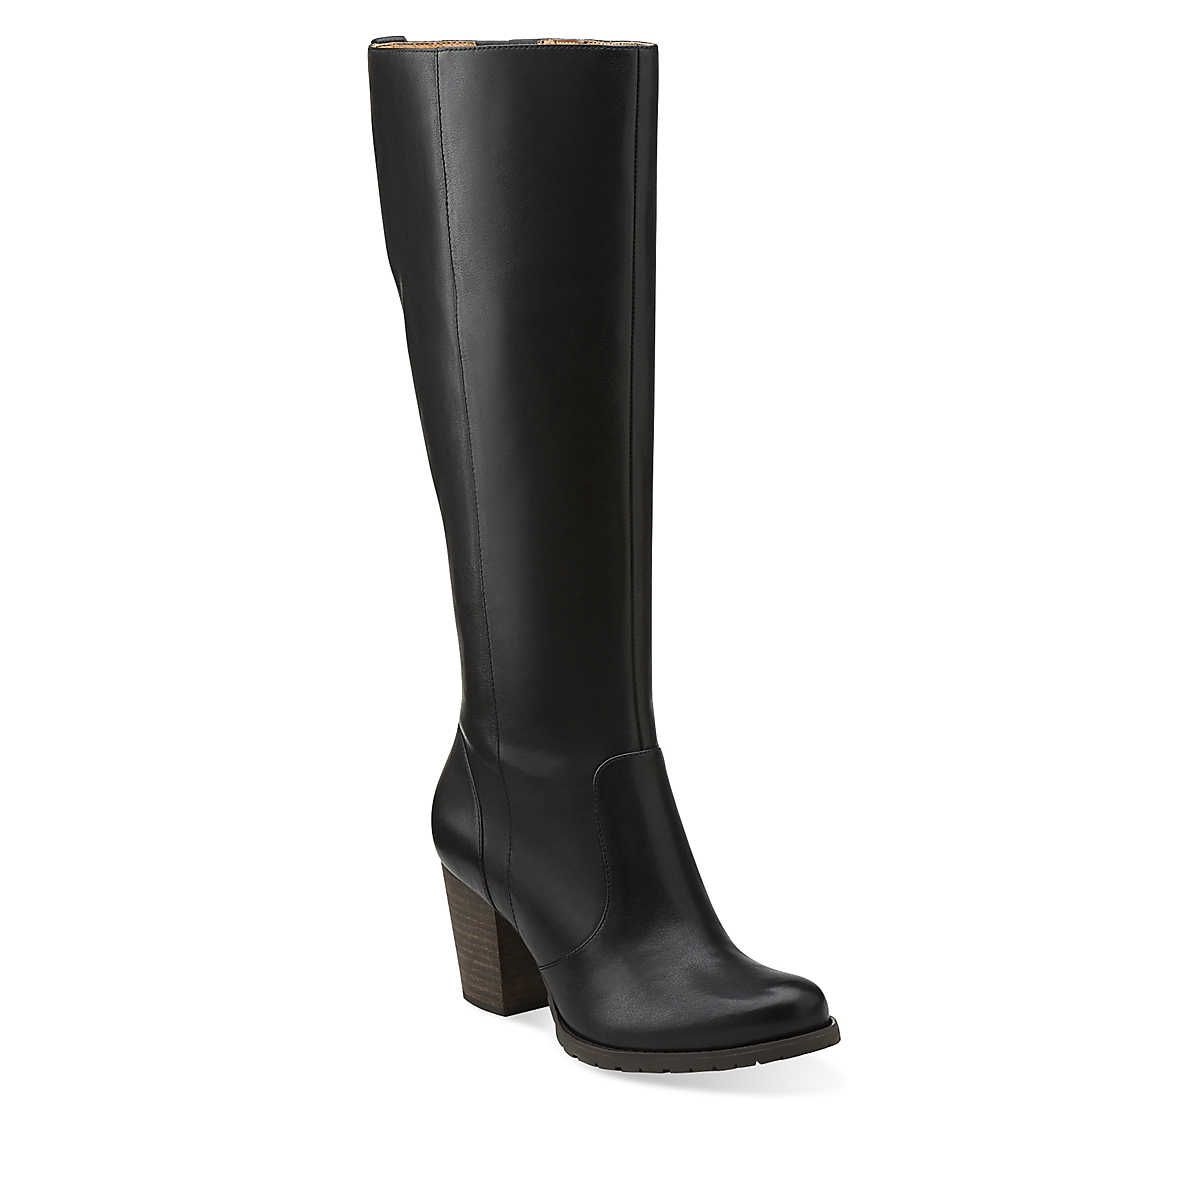 Mission Brynn in Black Leather - Womens Boots from Clarks